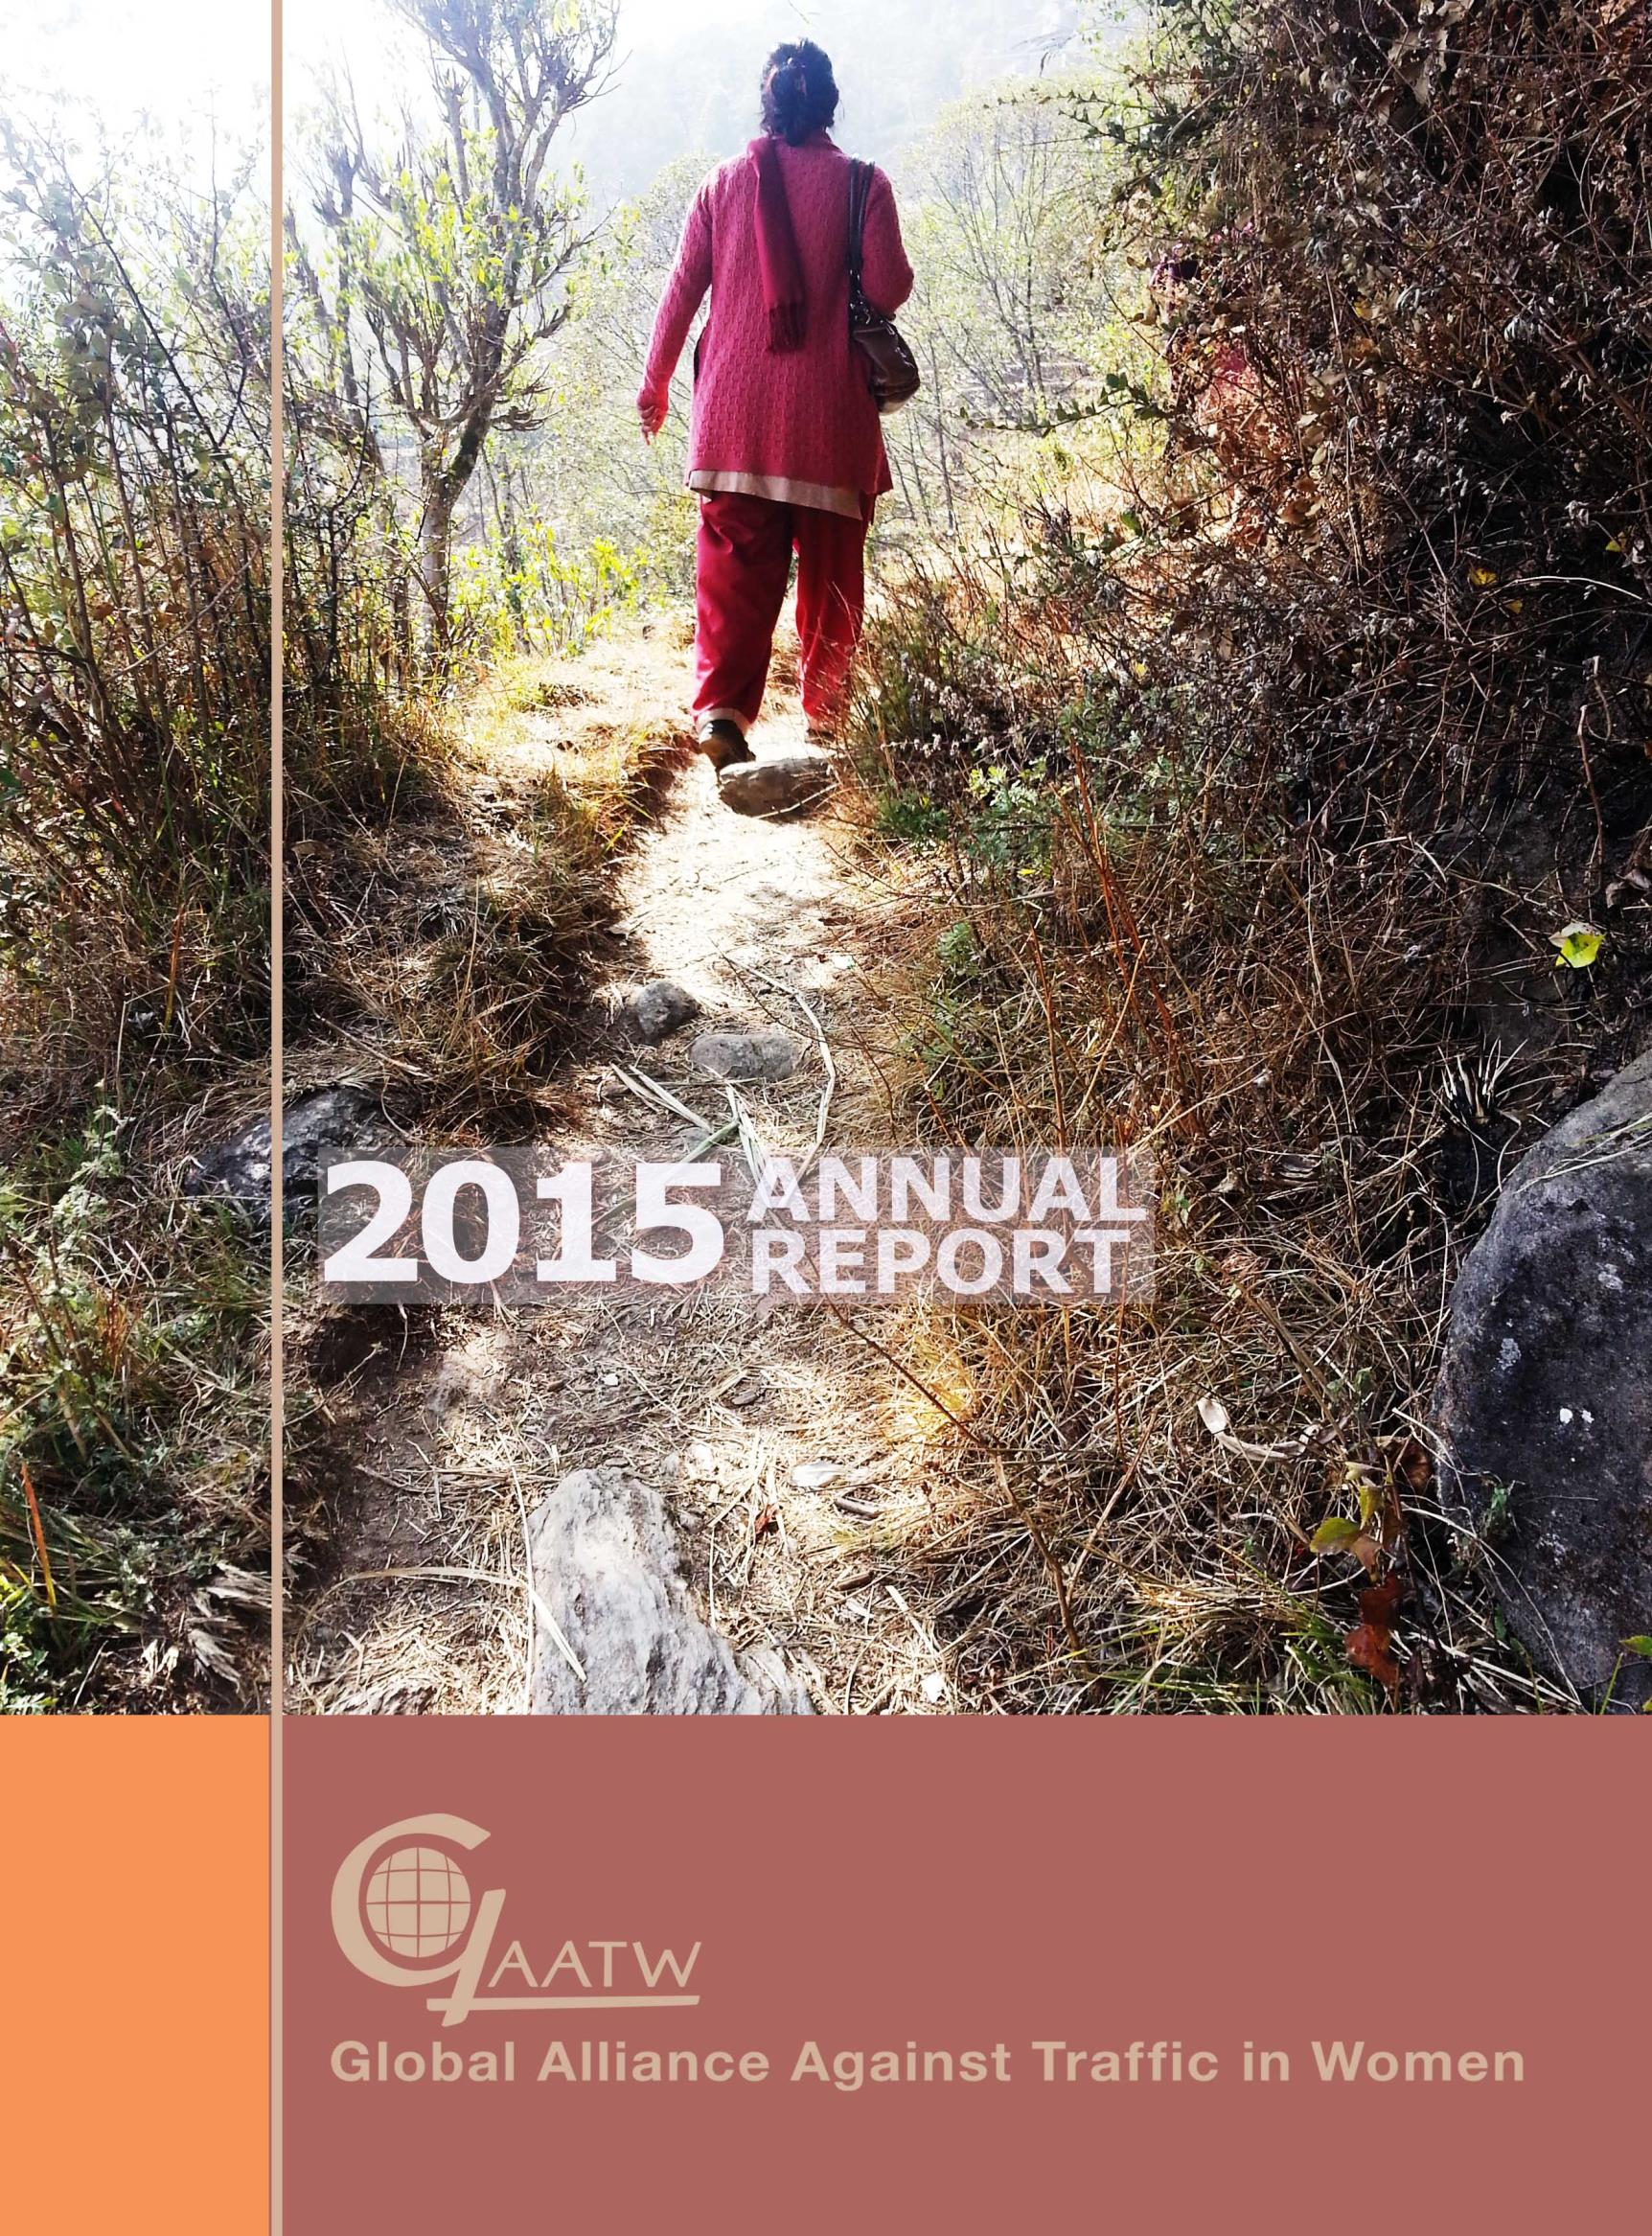 2015 GAATW Annual Report